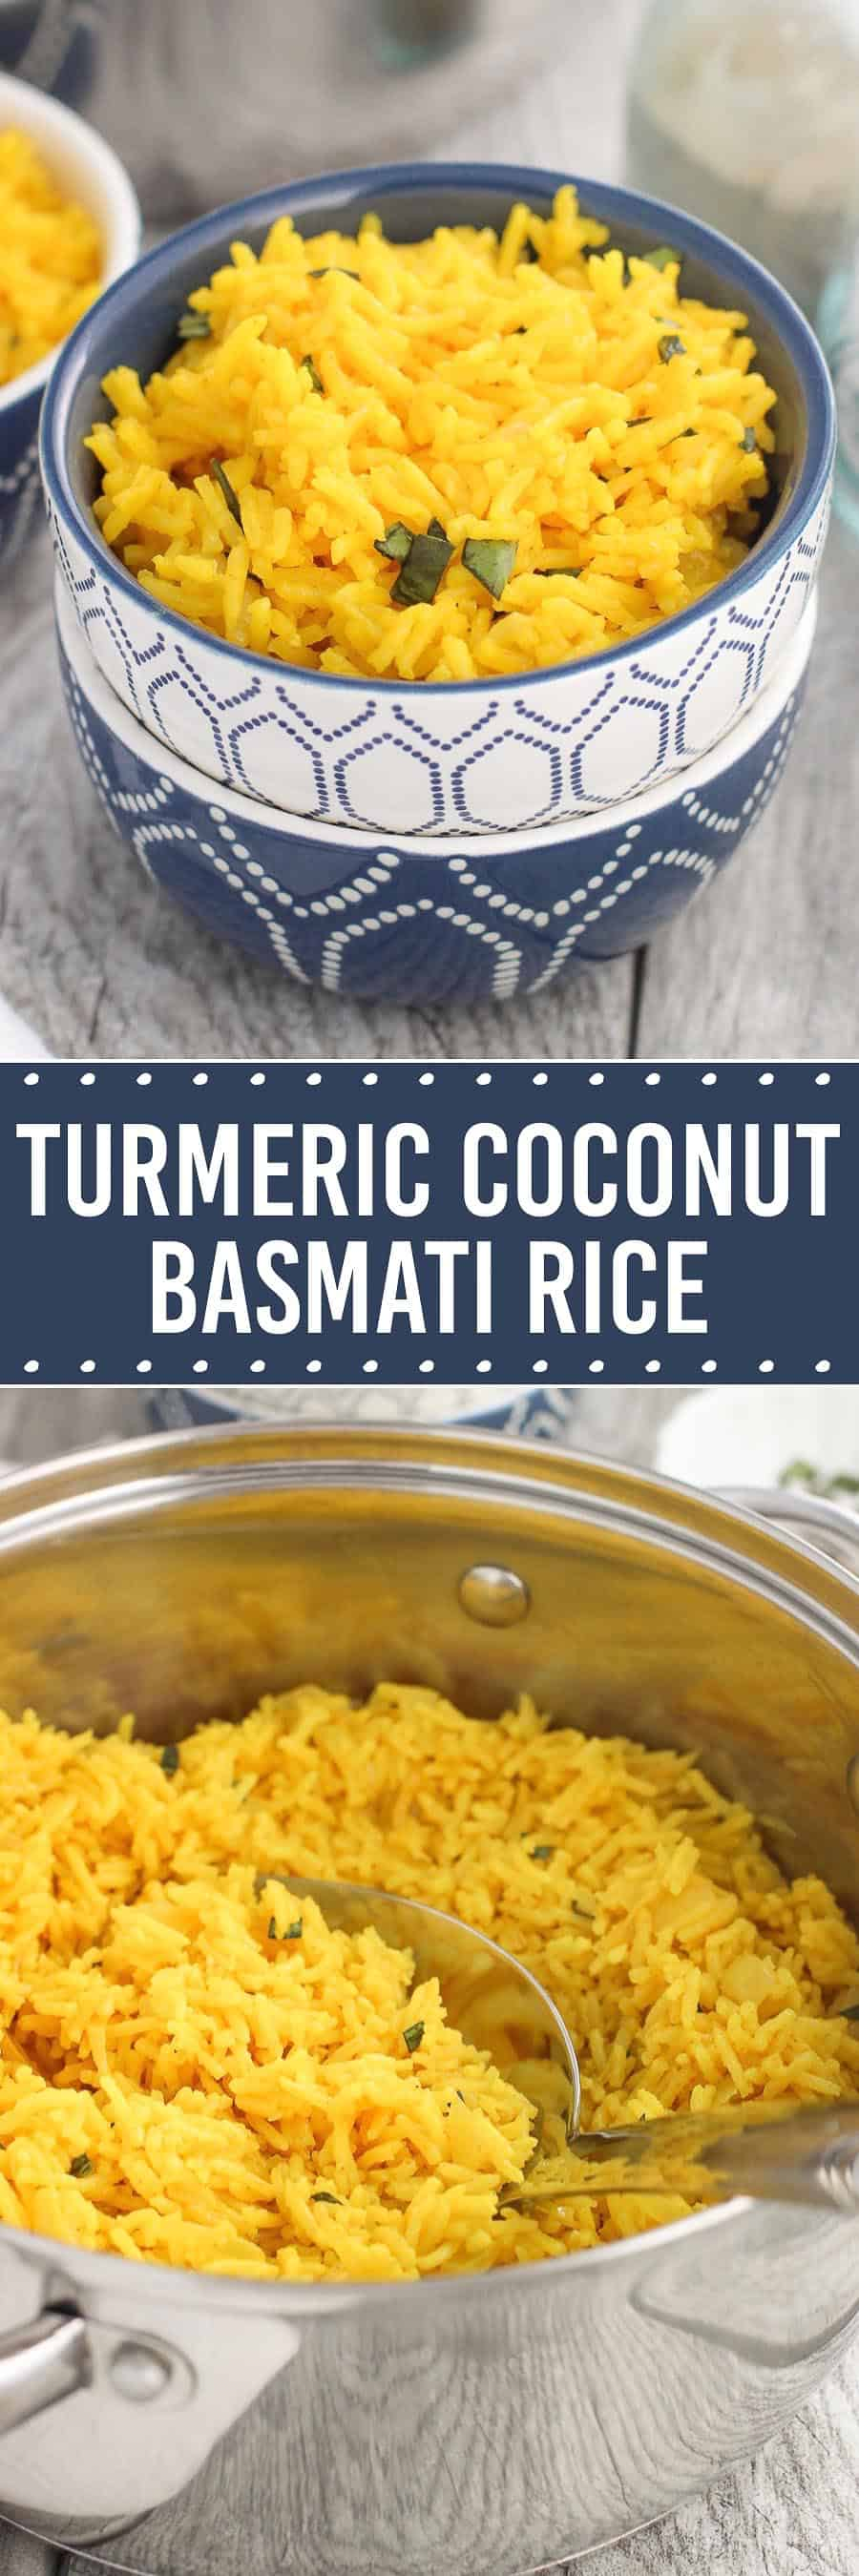 This turmeric coconut basmati rice is a flavorful rice side dish recipe that's easy to make! Garlic, ginger, and onion are sautéed and cooked with basmati rice and turmeric in a coconut milk/water mixture for a creamy dish, and topped with chopped fresh basil for serving.